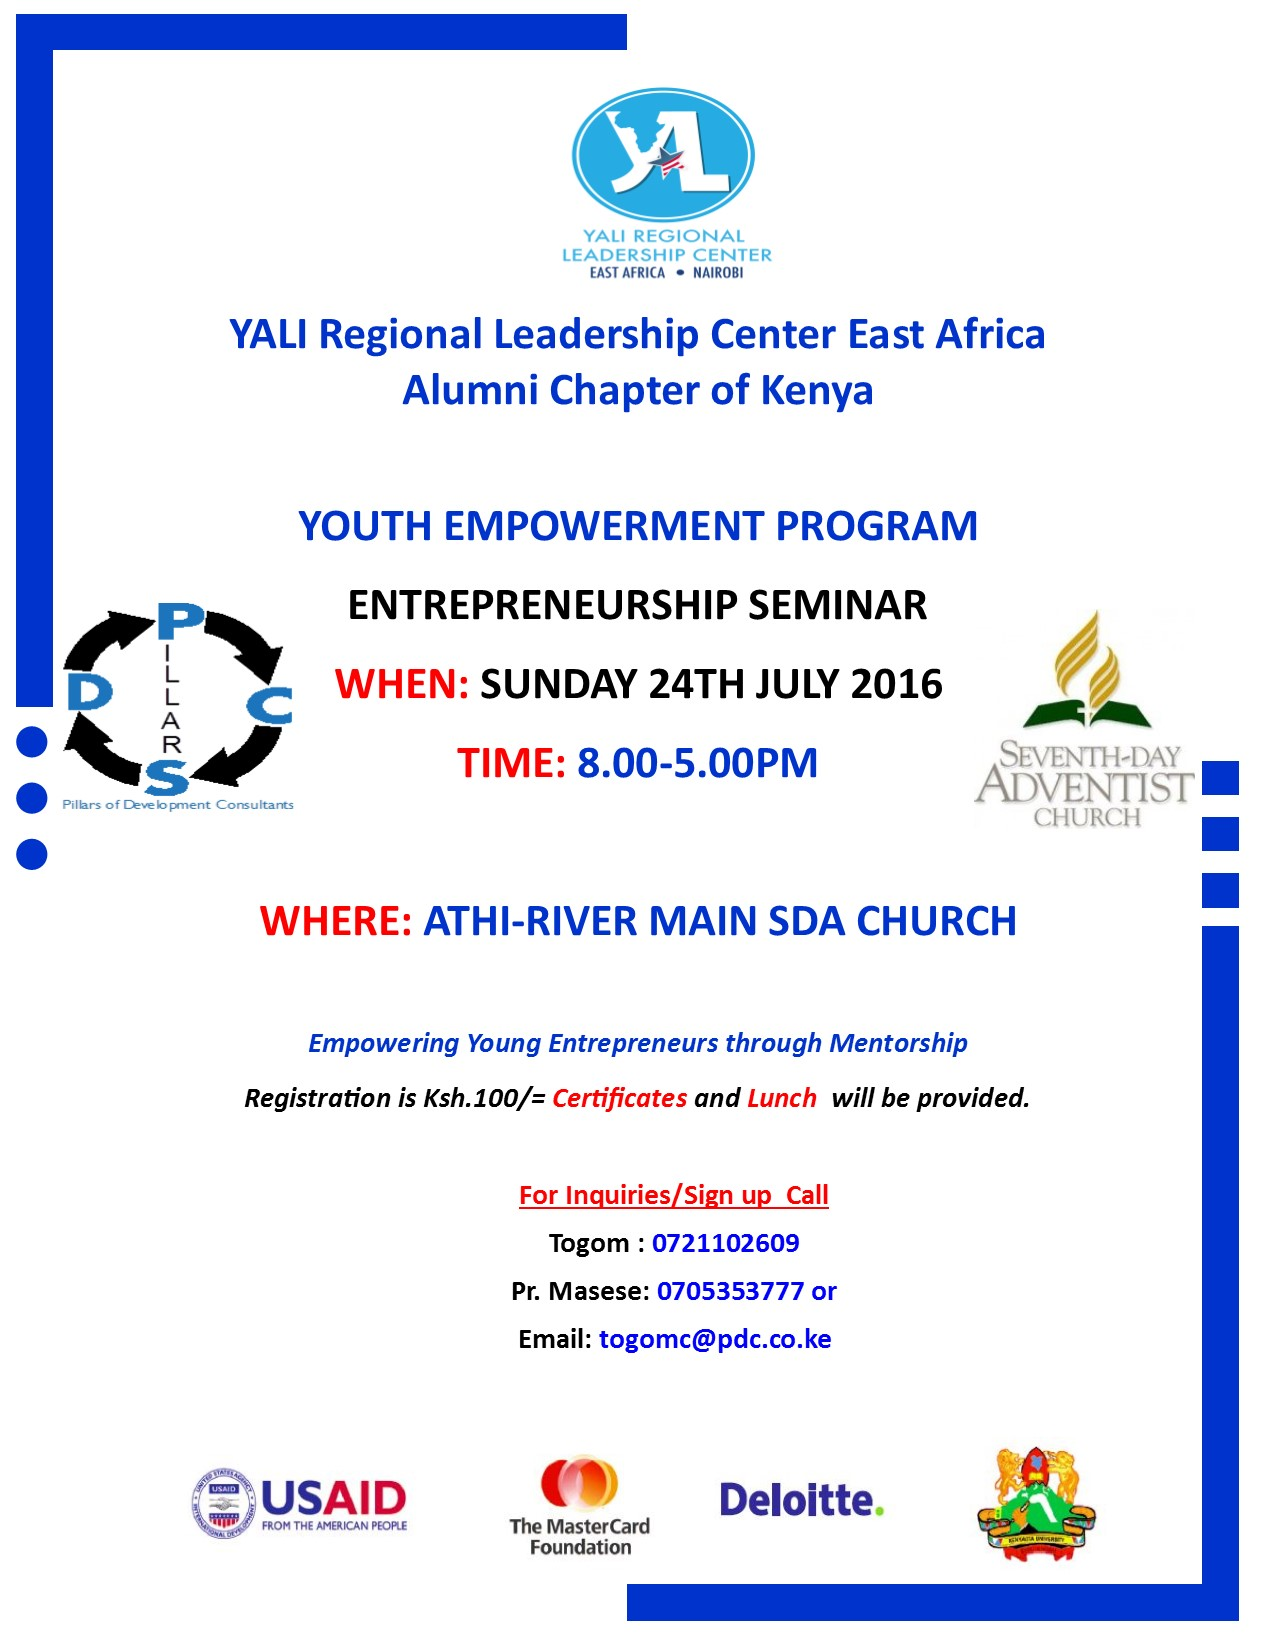 Invitation to participate in a youth entrepreneurship seminar